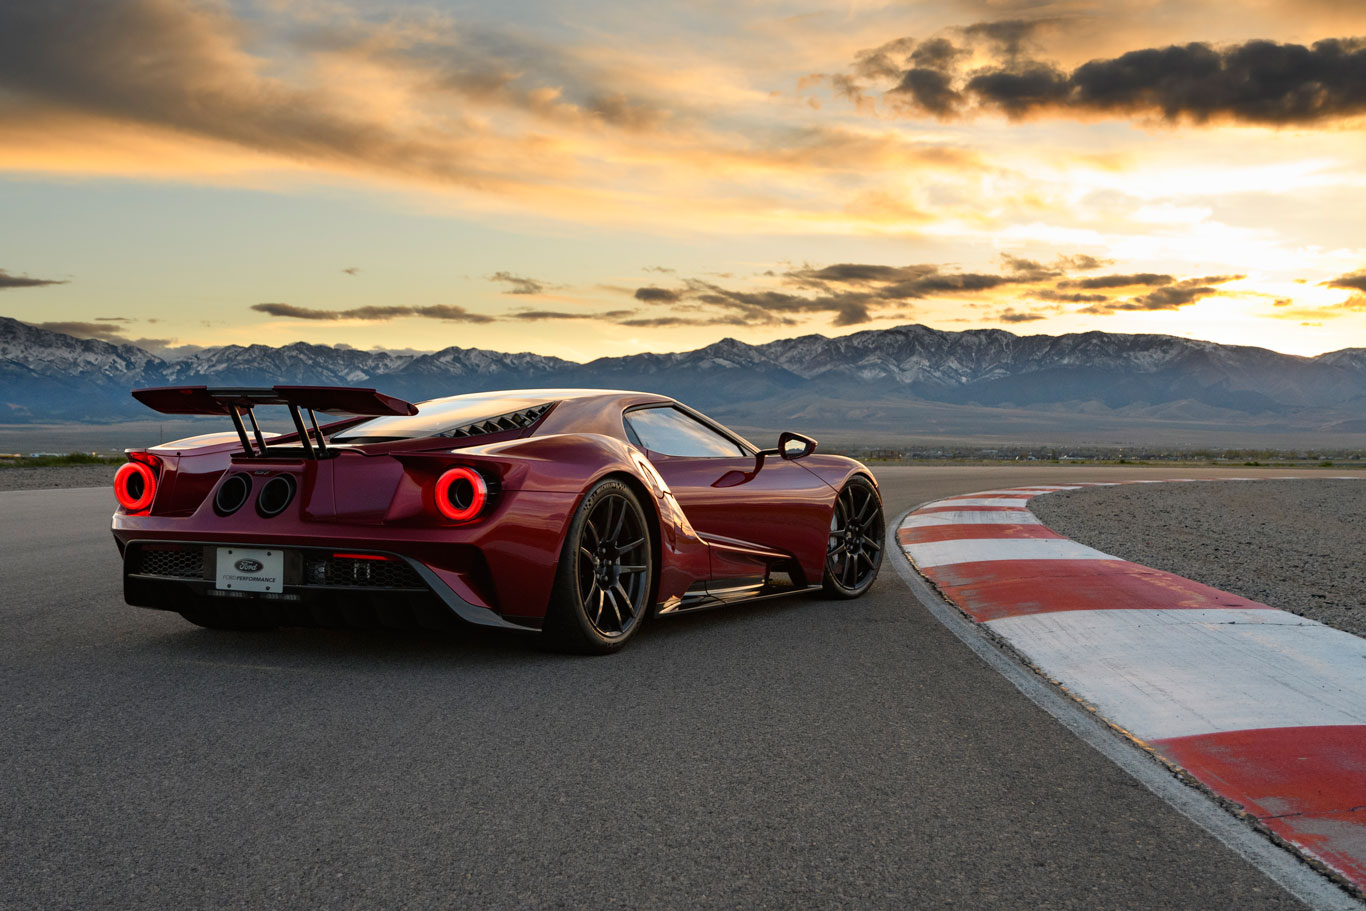 2017 Ford GT (Wes Duenkel for Ford)